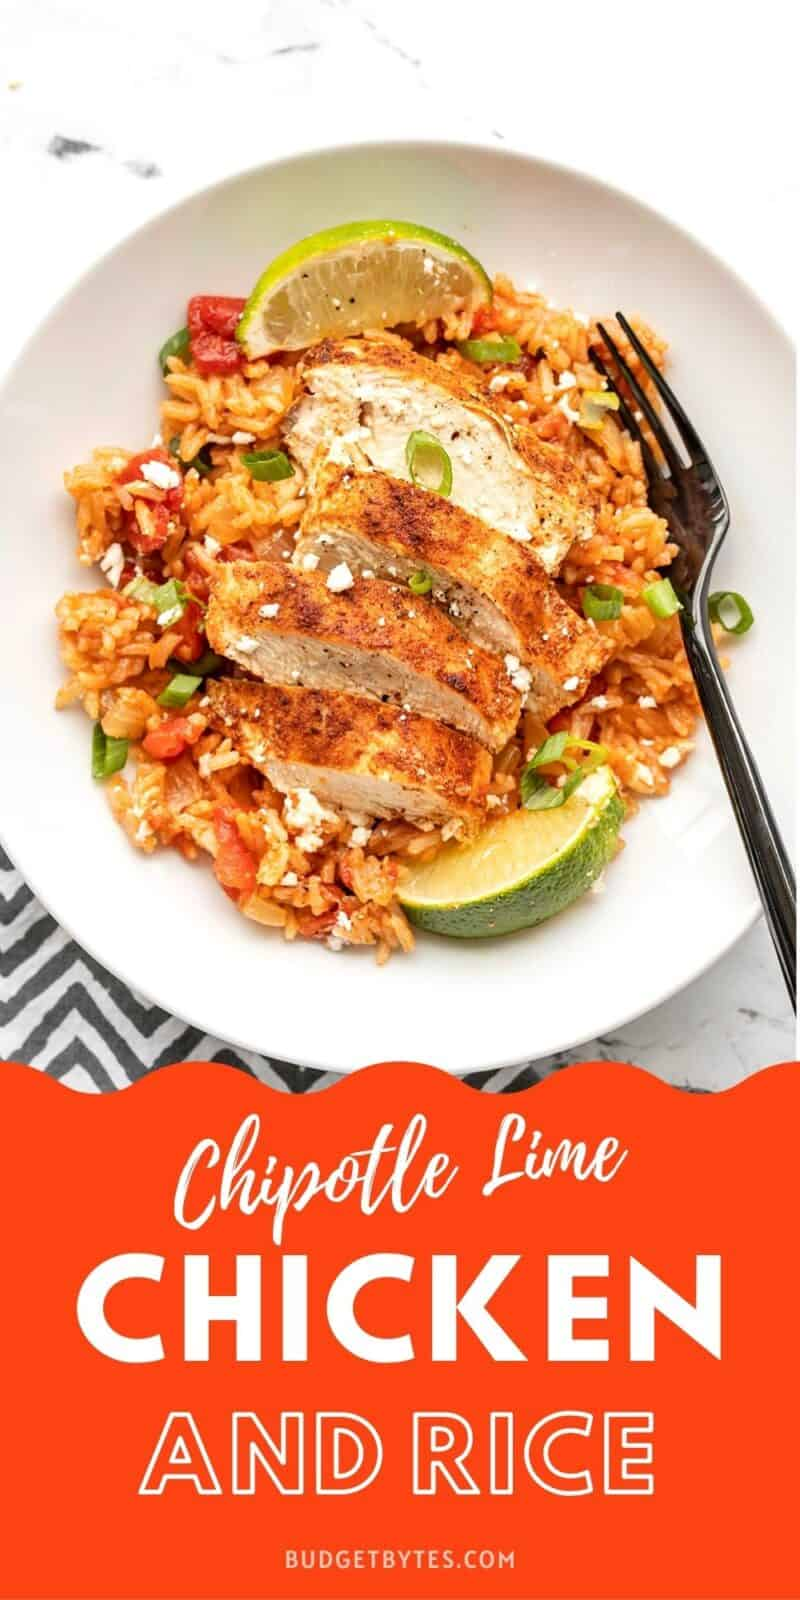 chipotle lime chicken and rice in a bowl, title text at the bottom